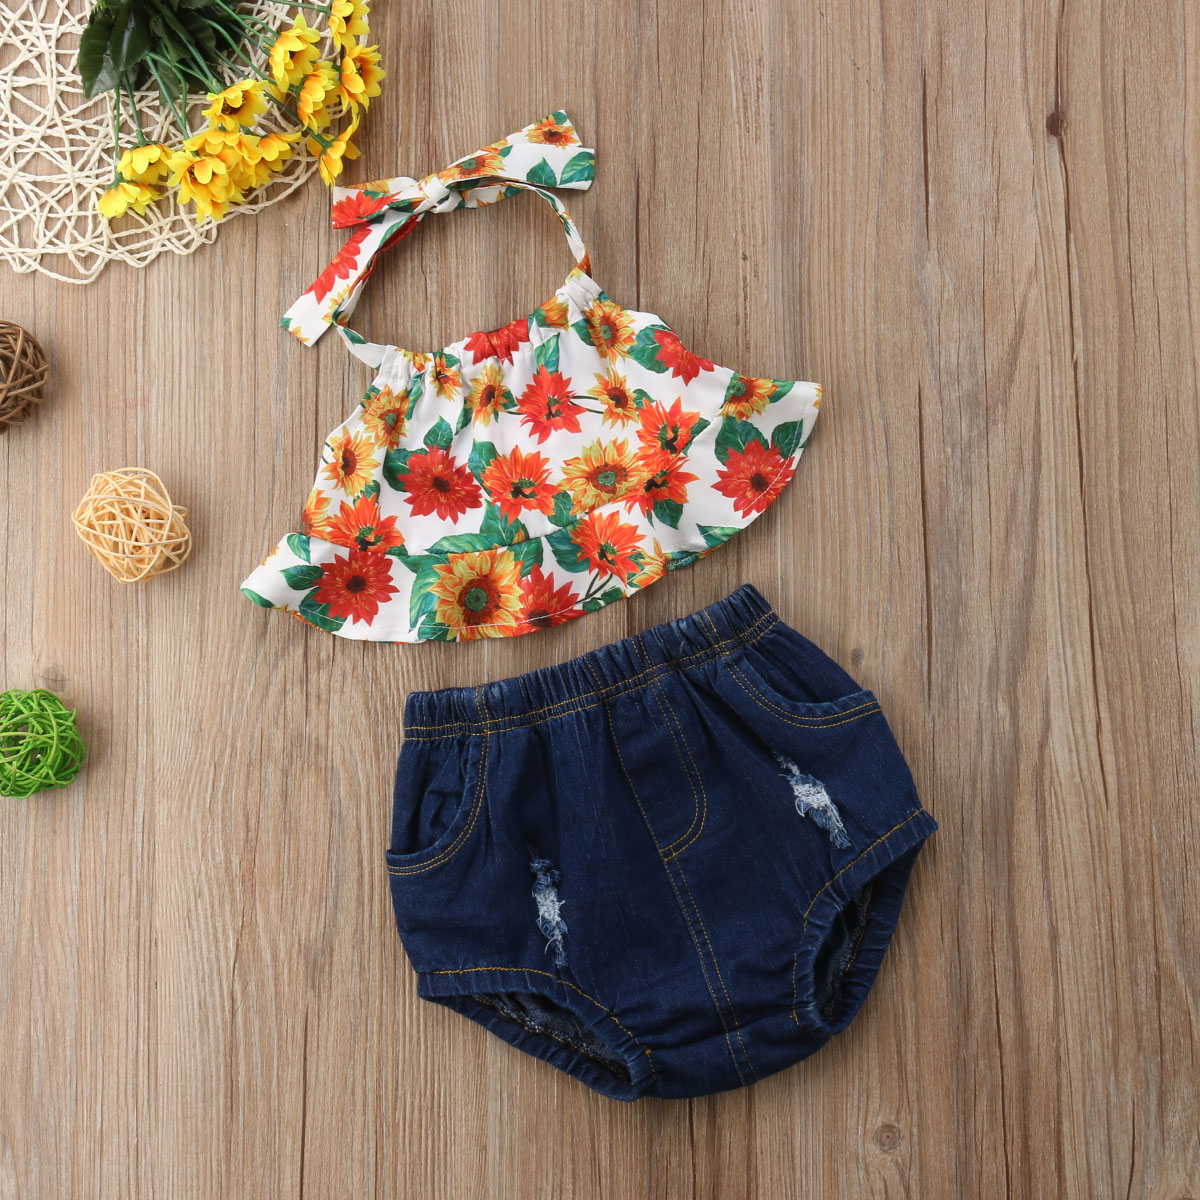 Summer Toddler Kid Baby Girl Clothes Sunflower Halter Tops+Pants 2PCS Outfit Set